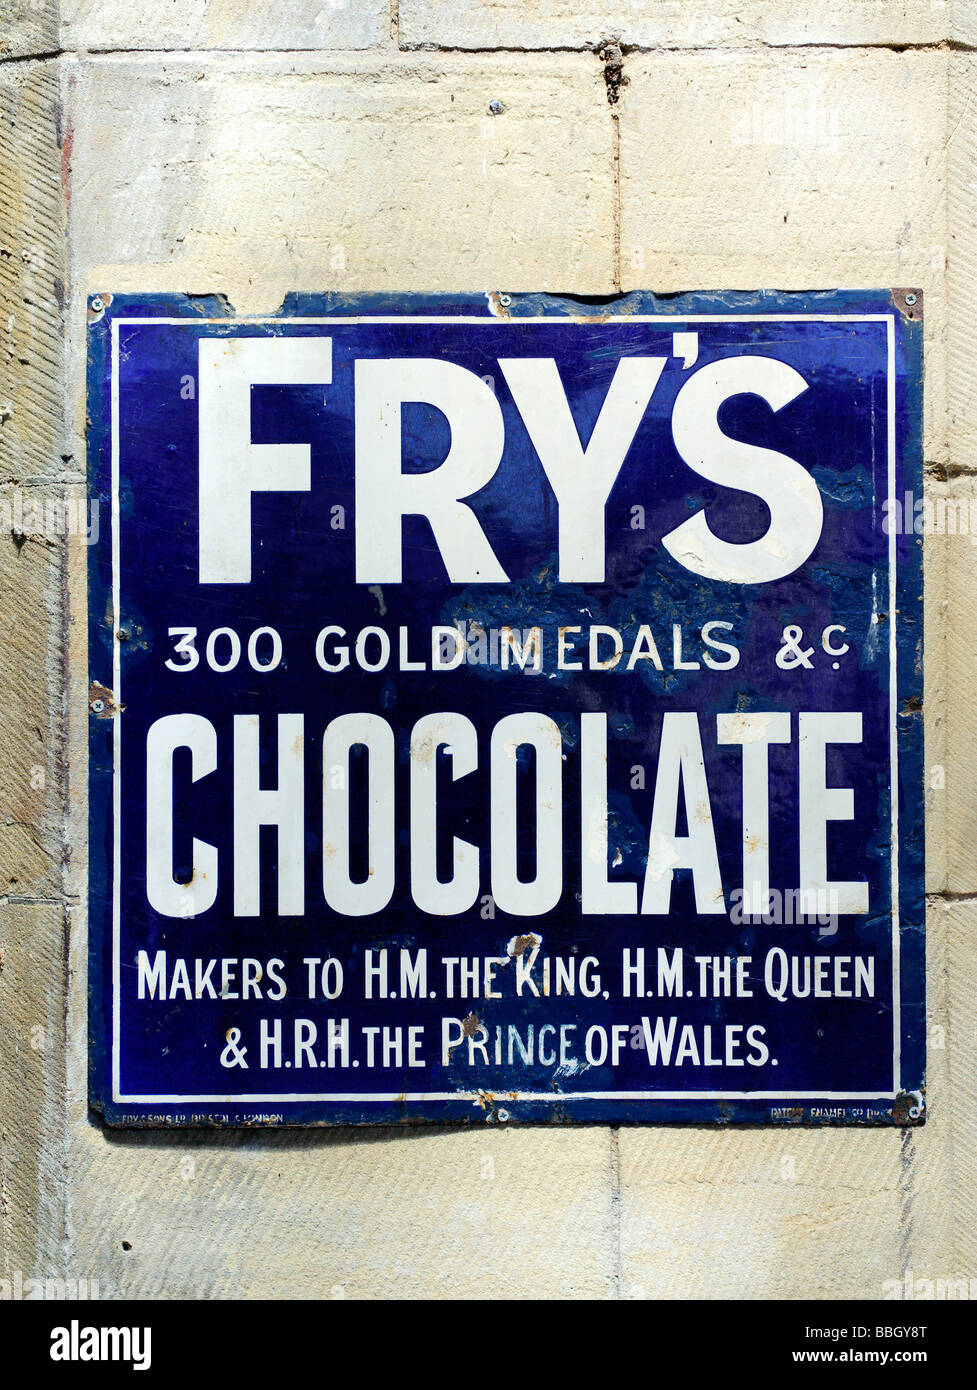 Old sign advertising Frys Chocolate - Stock Image